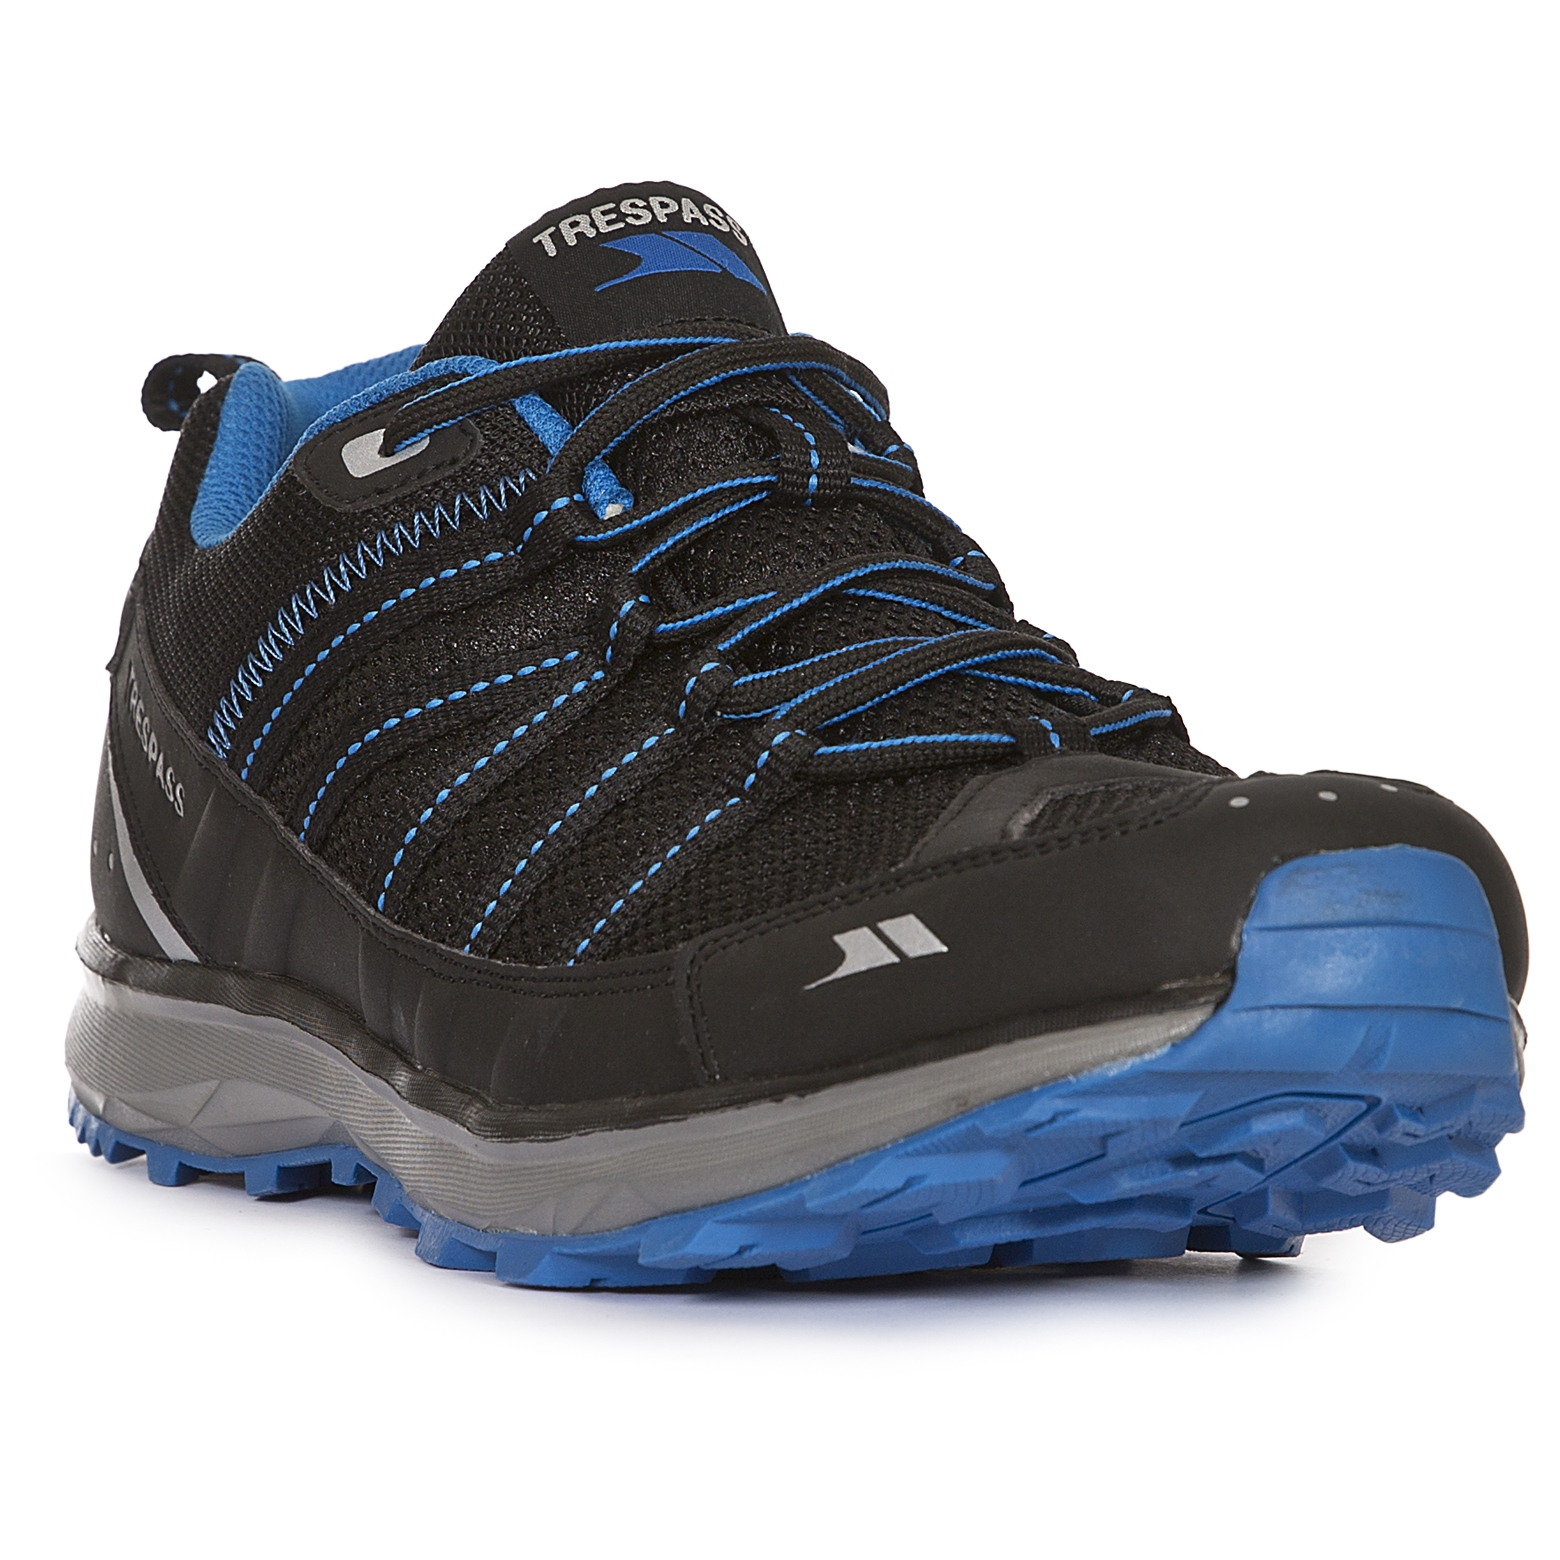 Trespass-Pace-Mens-Active-Trainers-Sports-Lace-Up-Shoes thumbnail 4